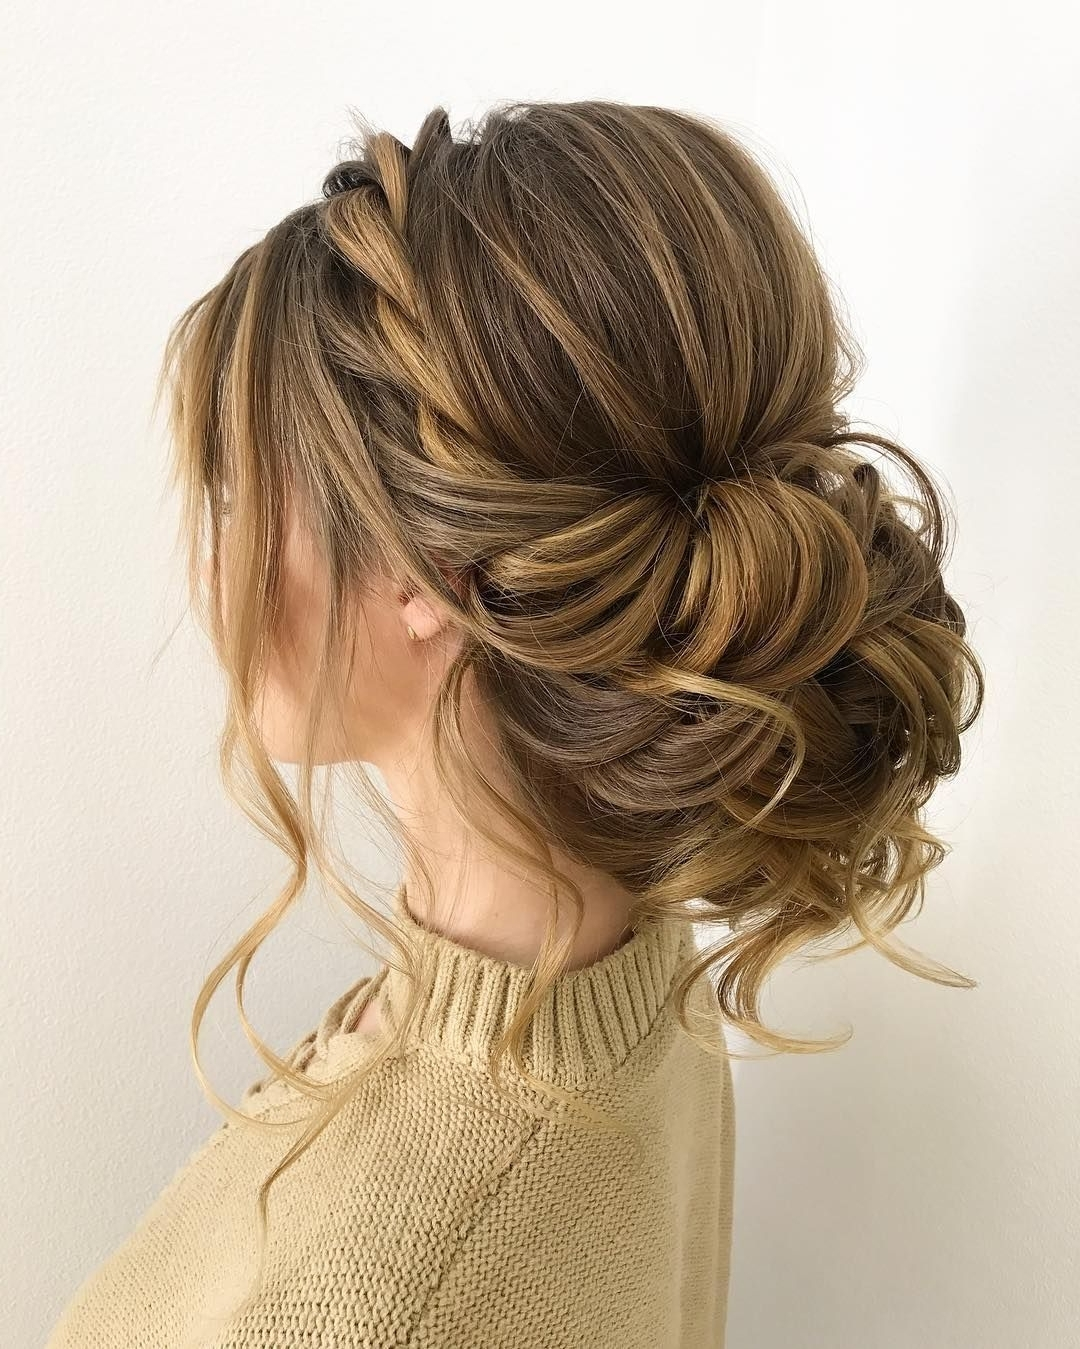 Gorgeous Wedding Updo Hairstyles That Will Wow Your Big Day Throughout Prom Updo Hairstyles (Gallery 8 of 15)